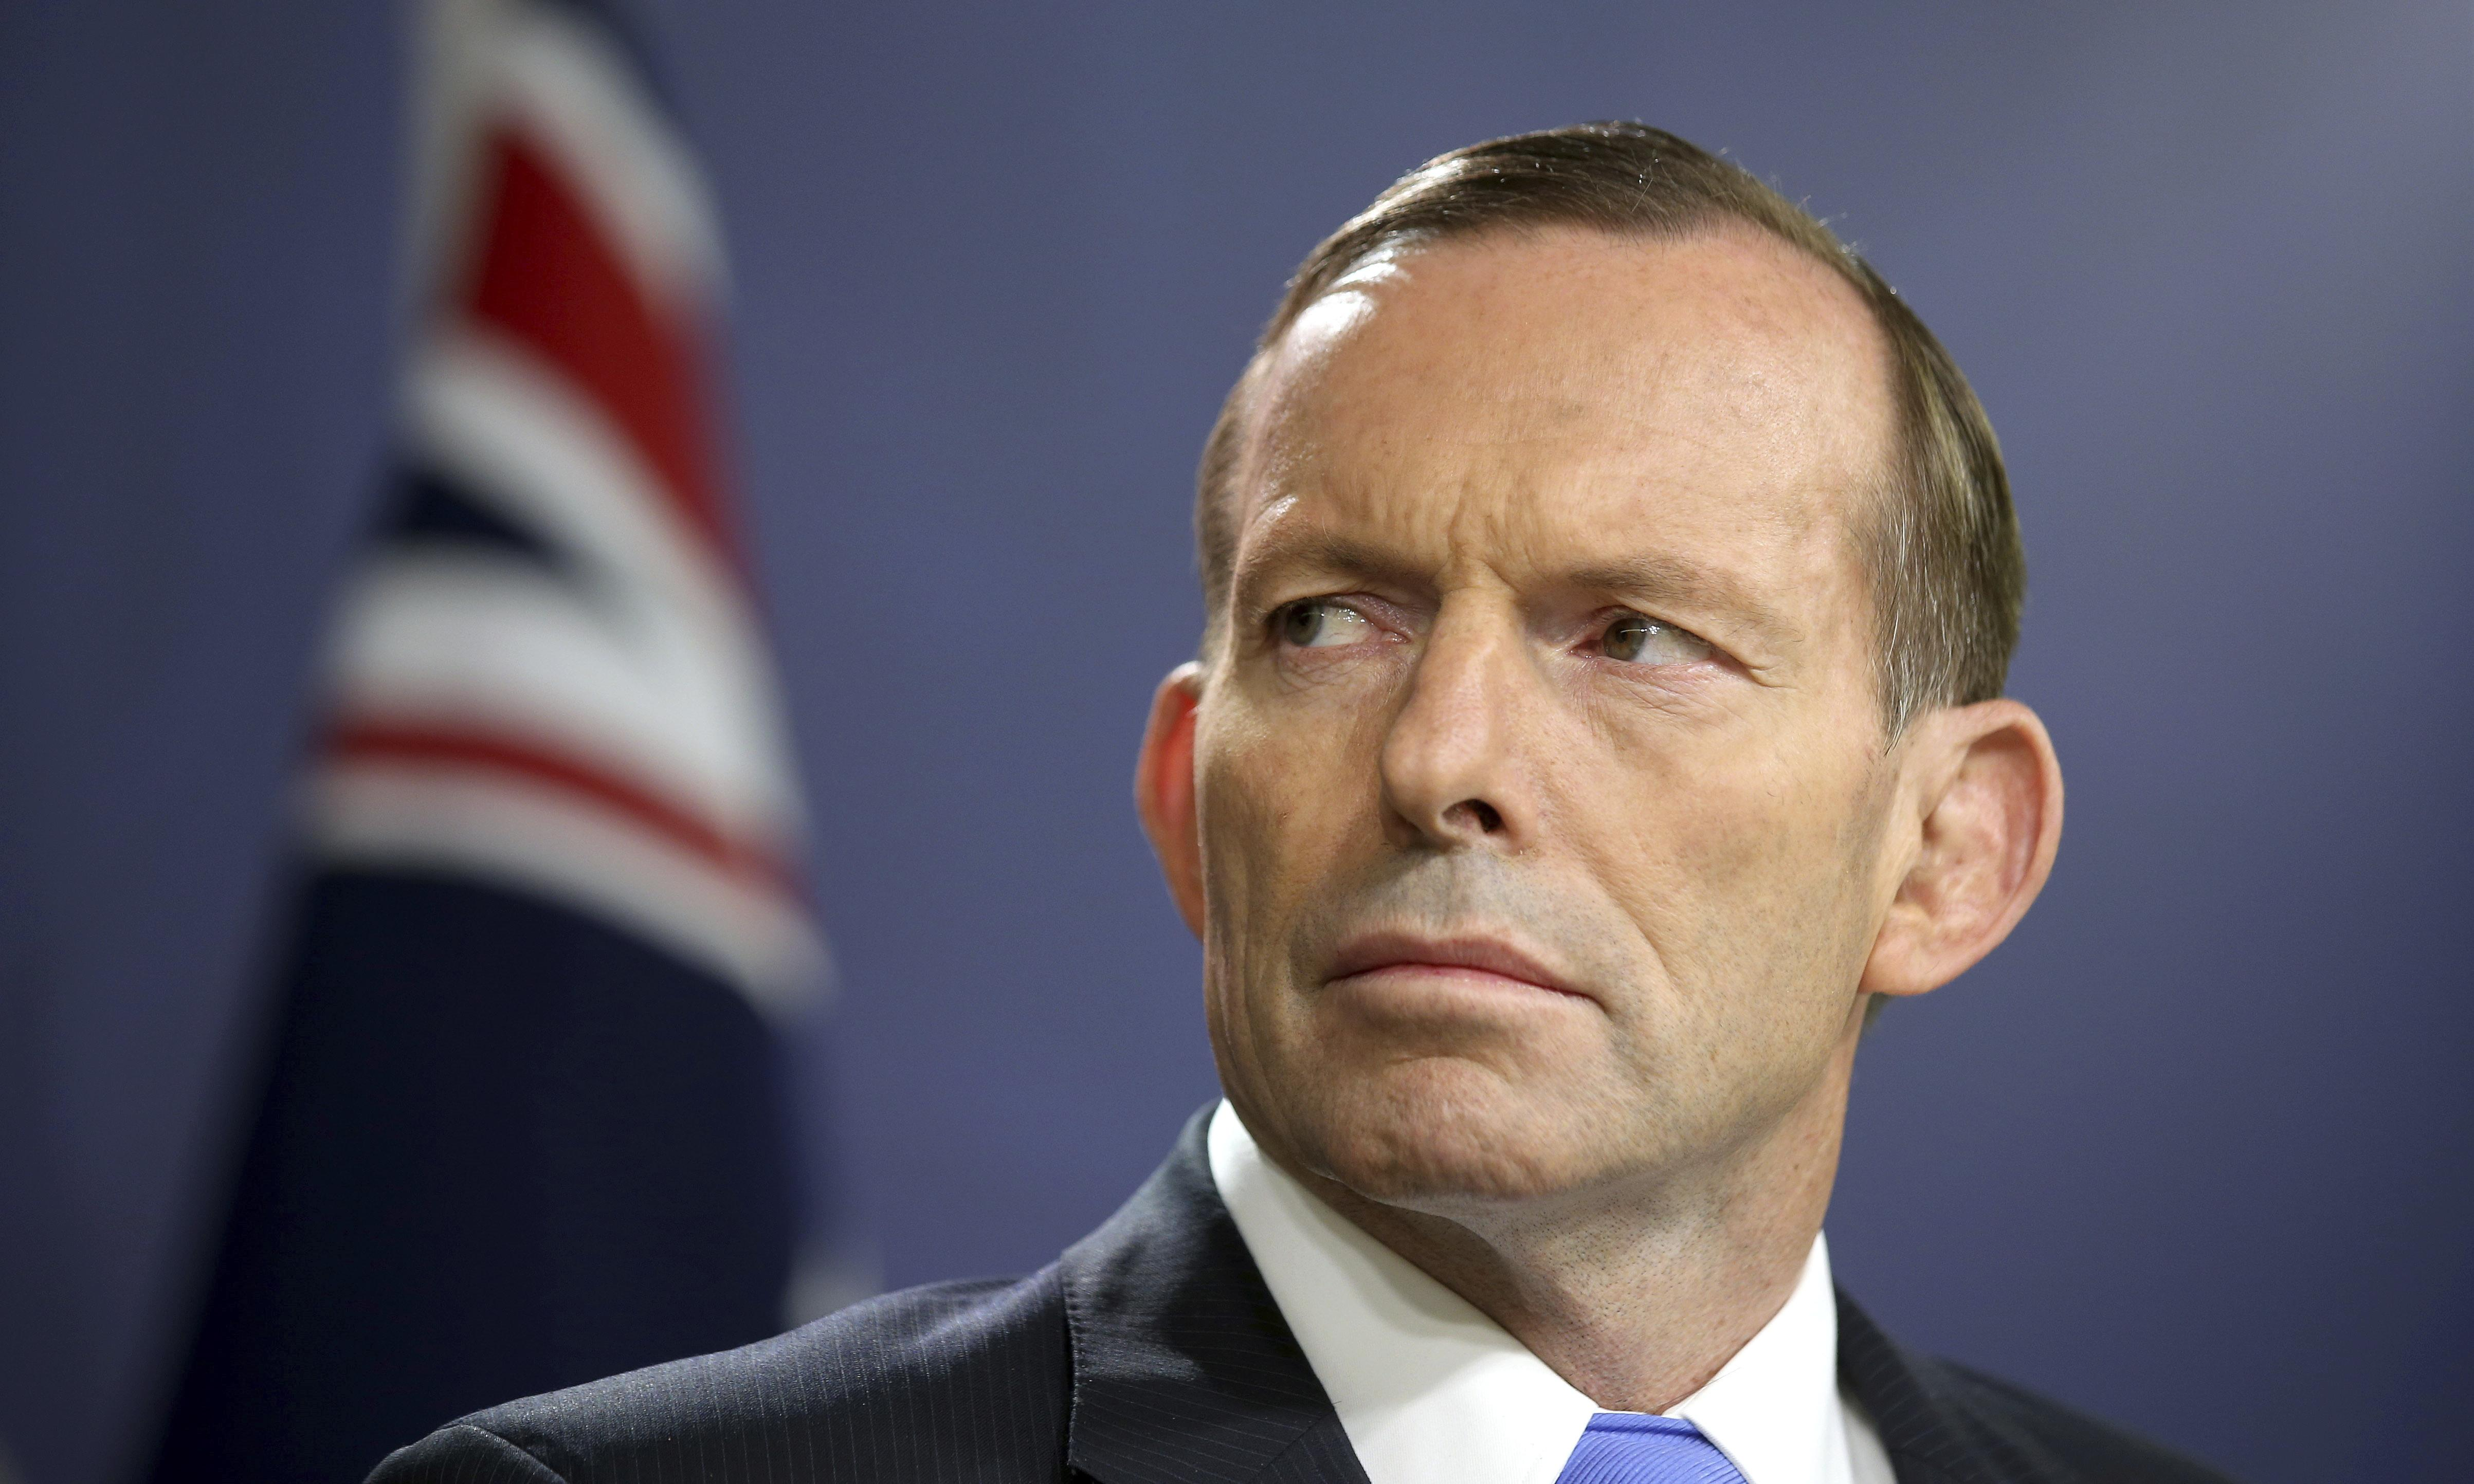 Tony Abbott has not changed, not even the Speedo pose looks different